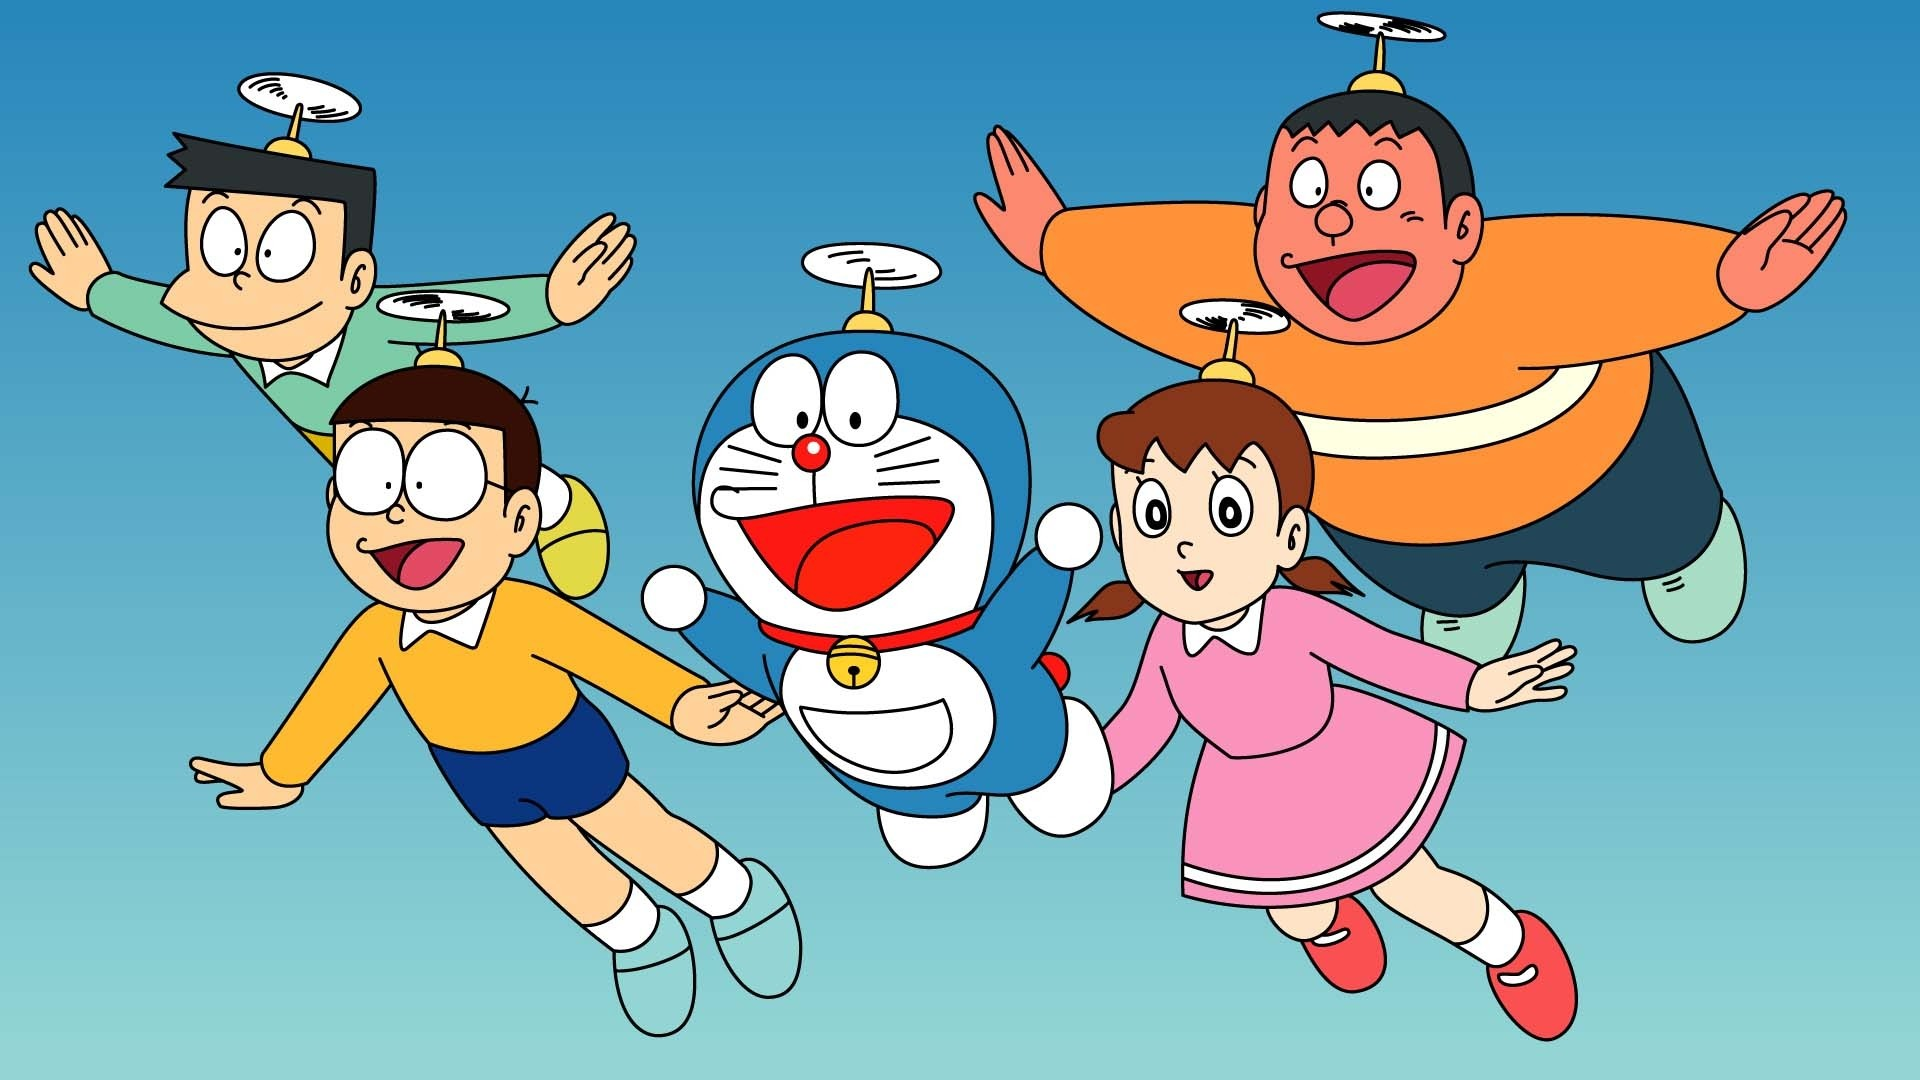 1920x1080 HDQ Cover Doraemon Images Collection for Desktop – download free